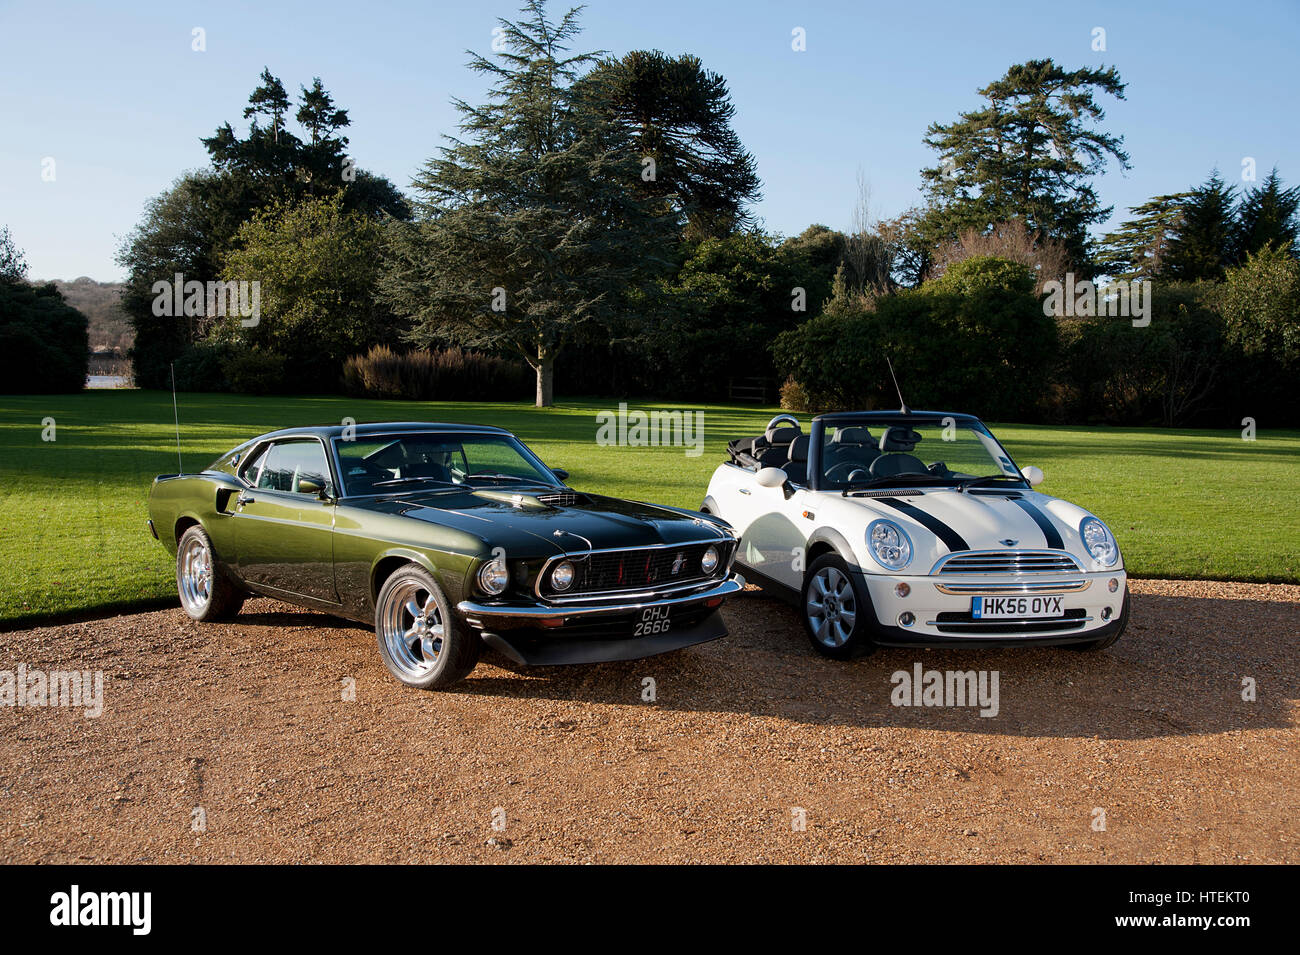 1968 Ford Mustang and 2006 Mini Cooper convertible - Stock Image